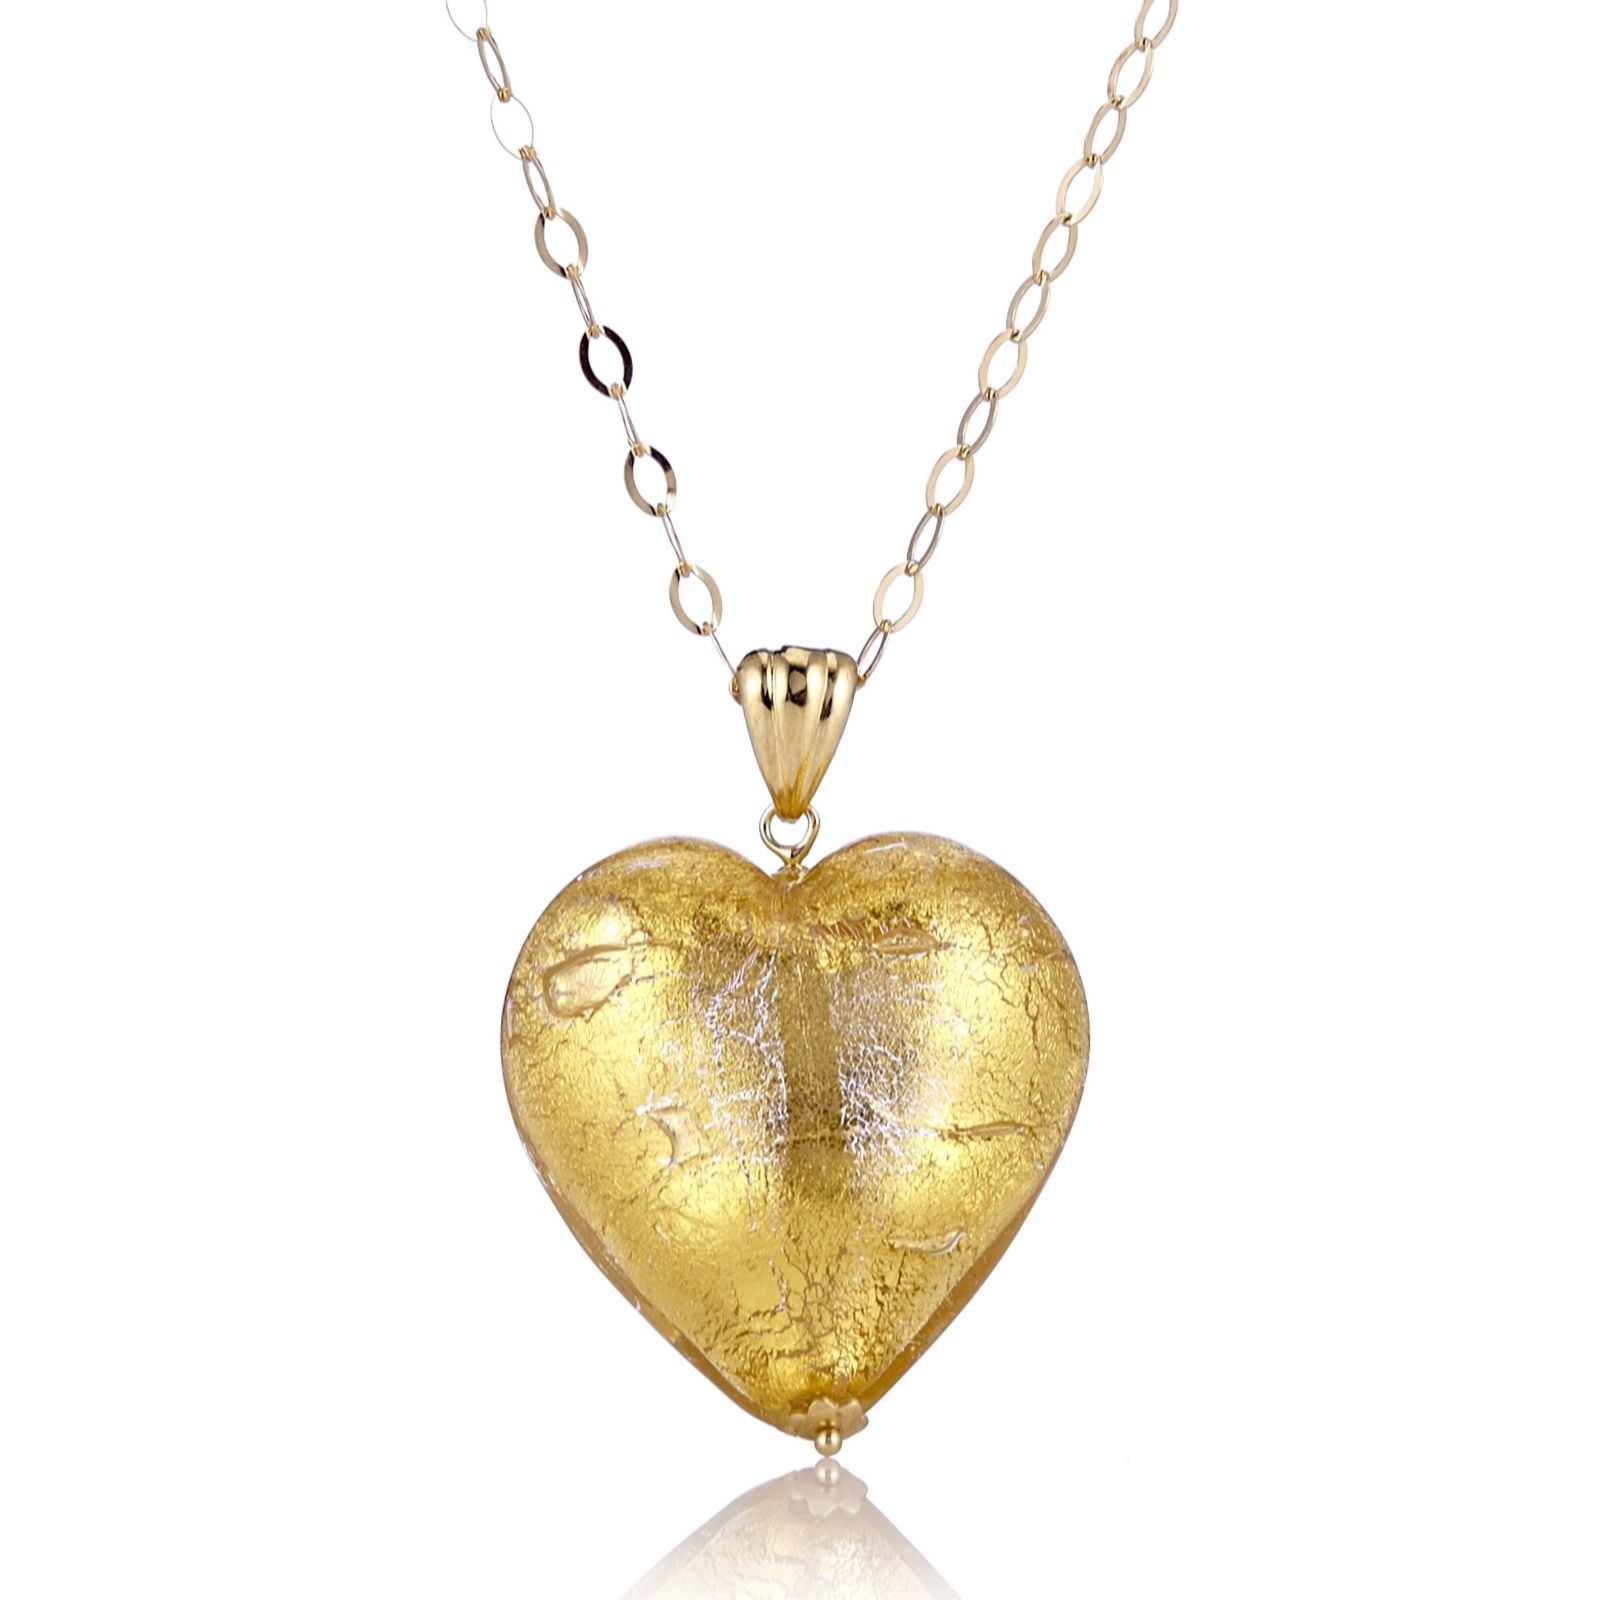 Best of heart pendant designs in gold jewellrys website murano glass heart pendant 60cm chain sterling silver page 1 mozeypictures Image collections